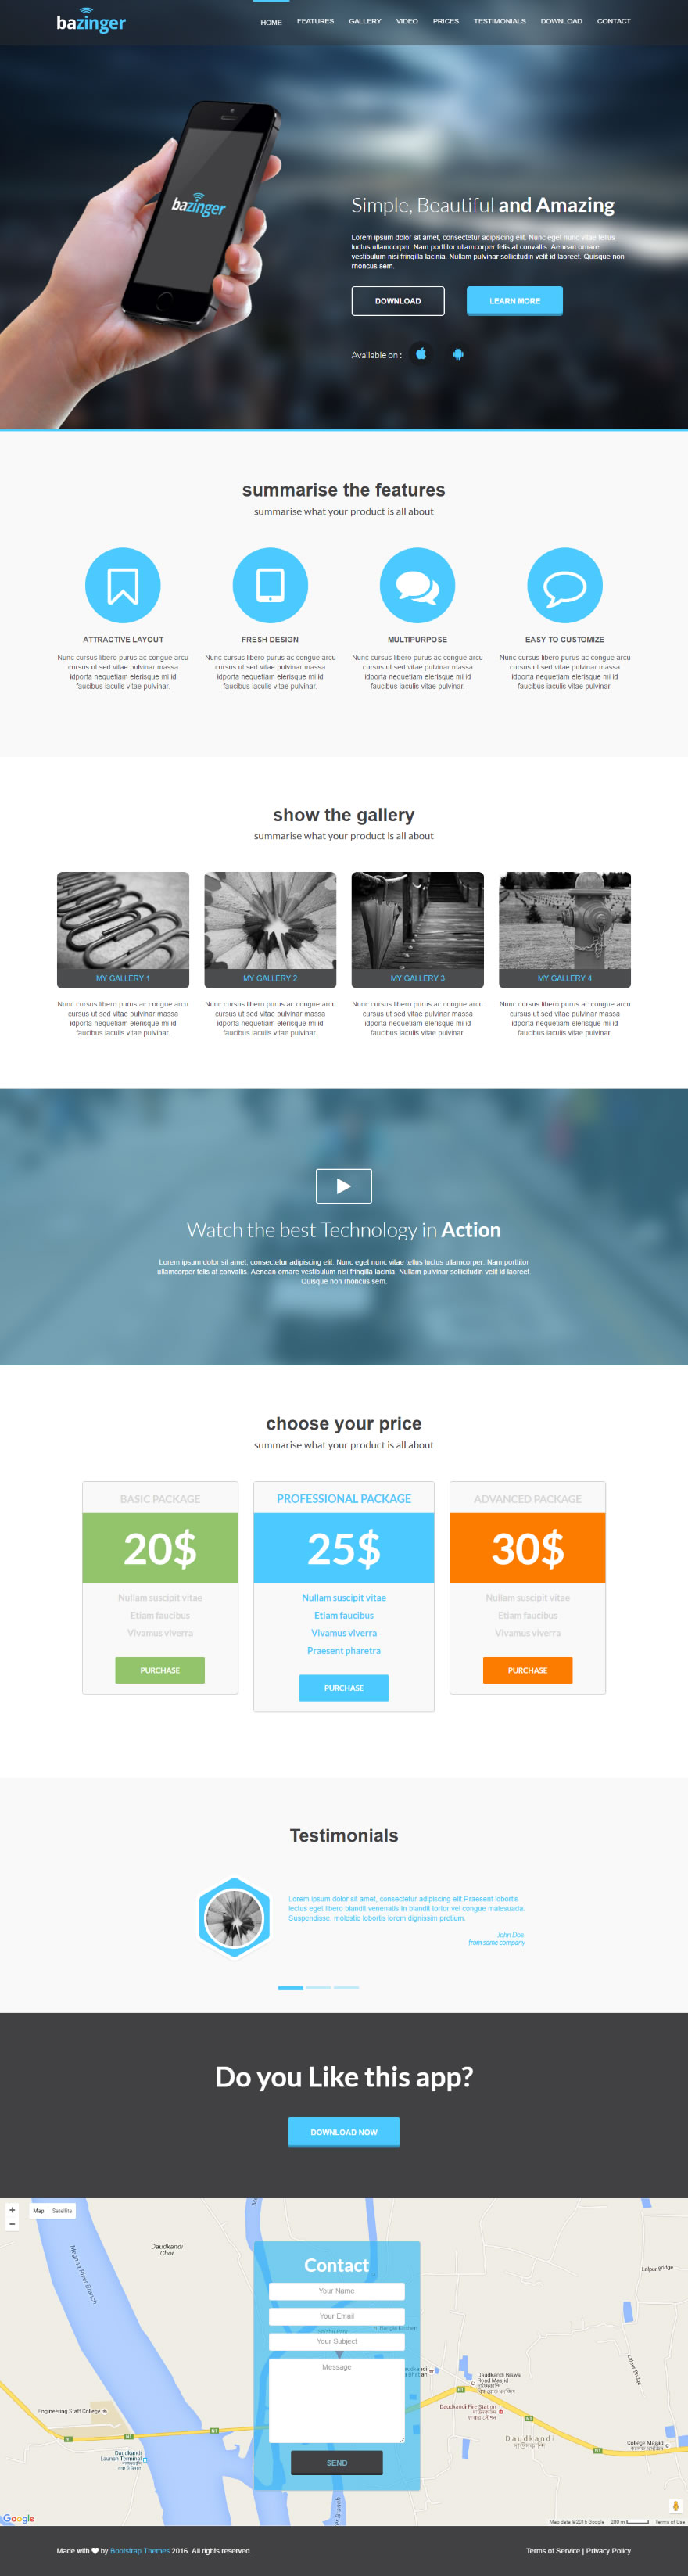 Github bootstrapthemesco bazinger landing page template for Basic dreamweaver templates